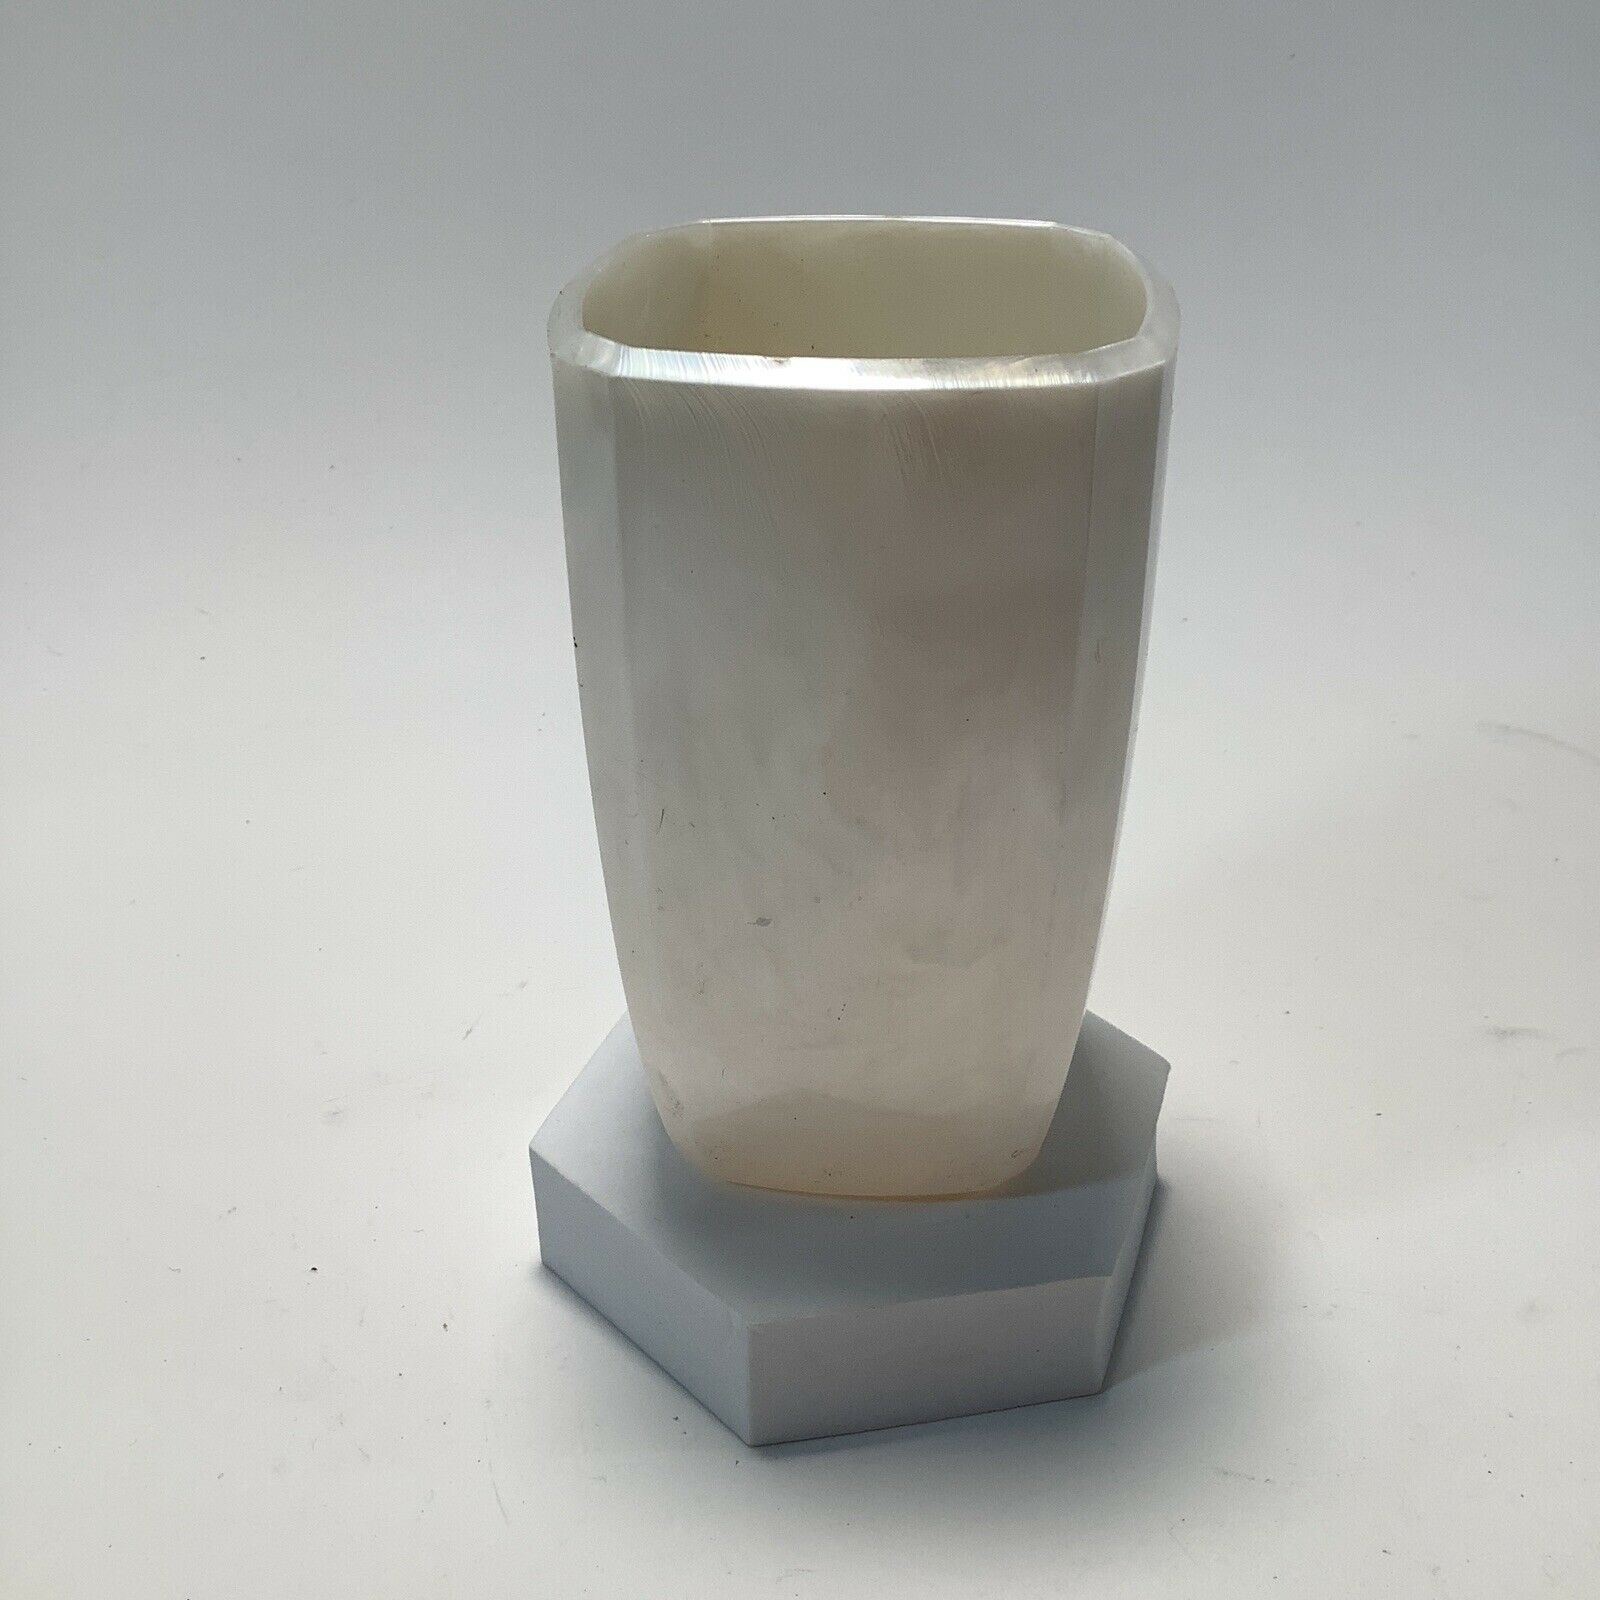 Tooth Brush Holder Bathroom Cup Pearl Colored